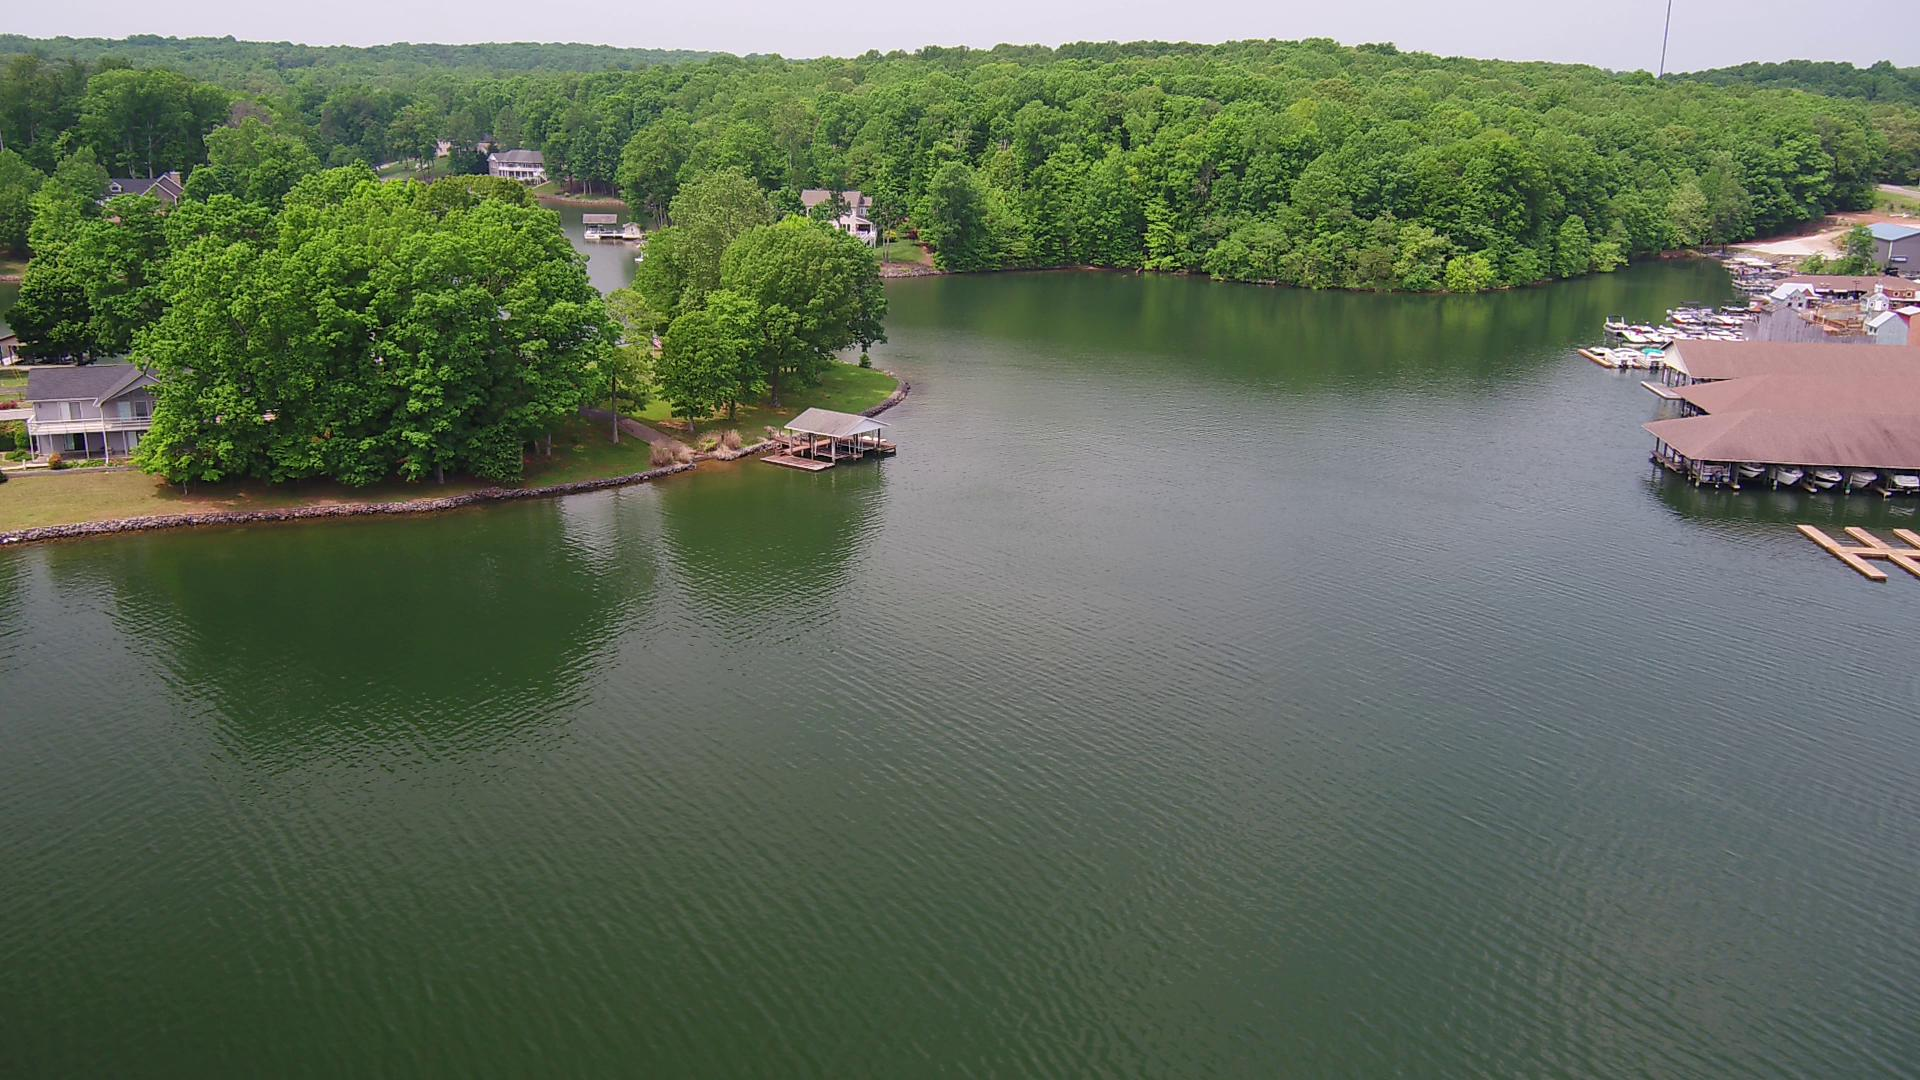 SKY13 over Smith Mountain Lake